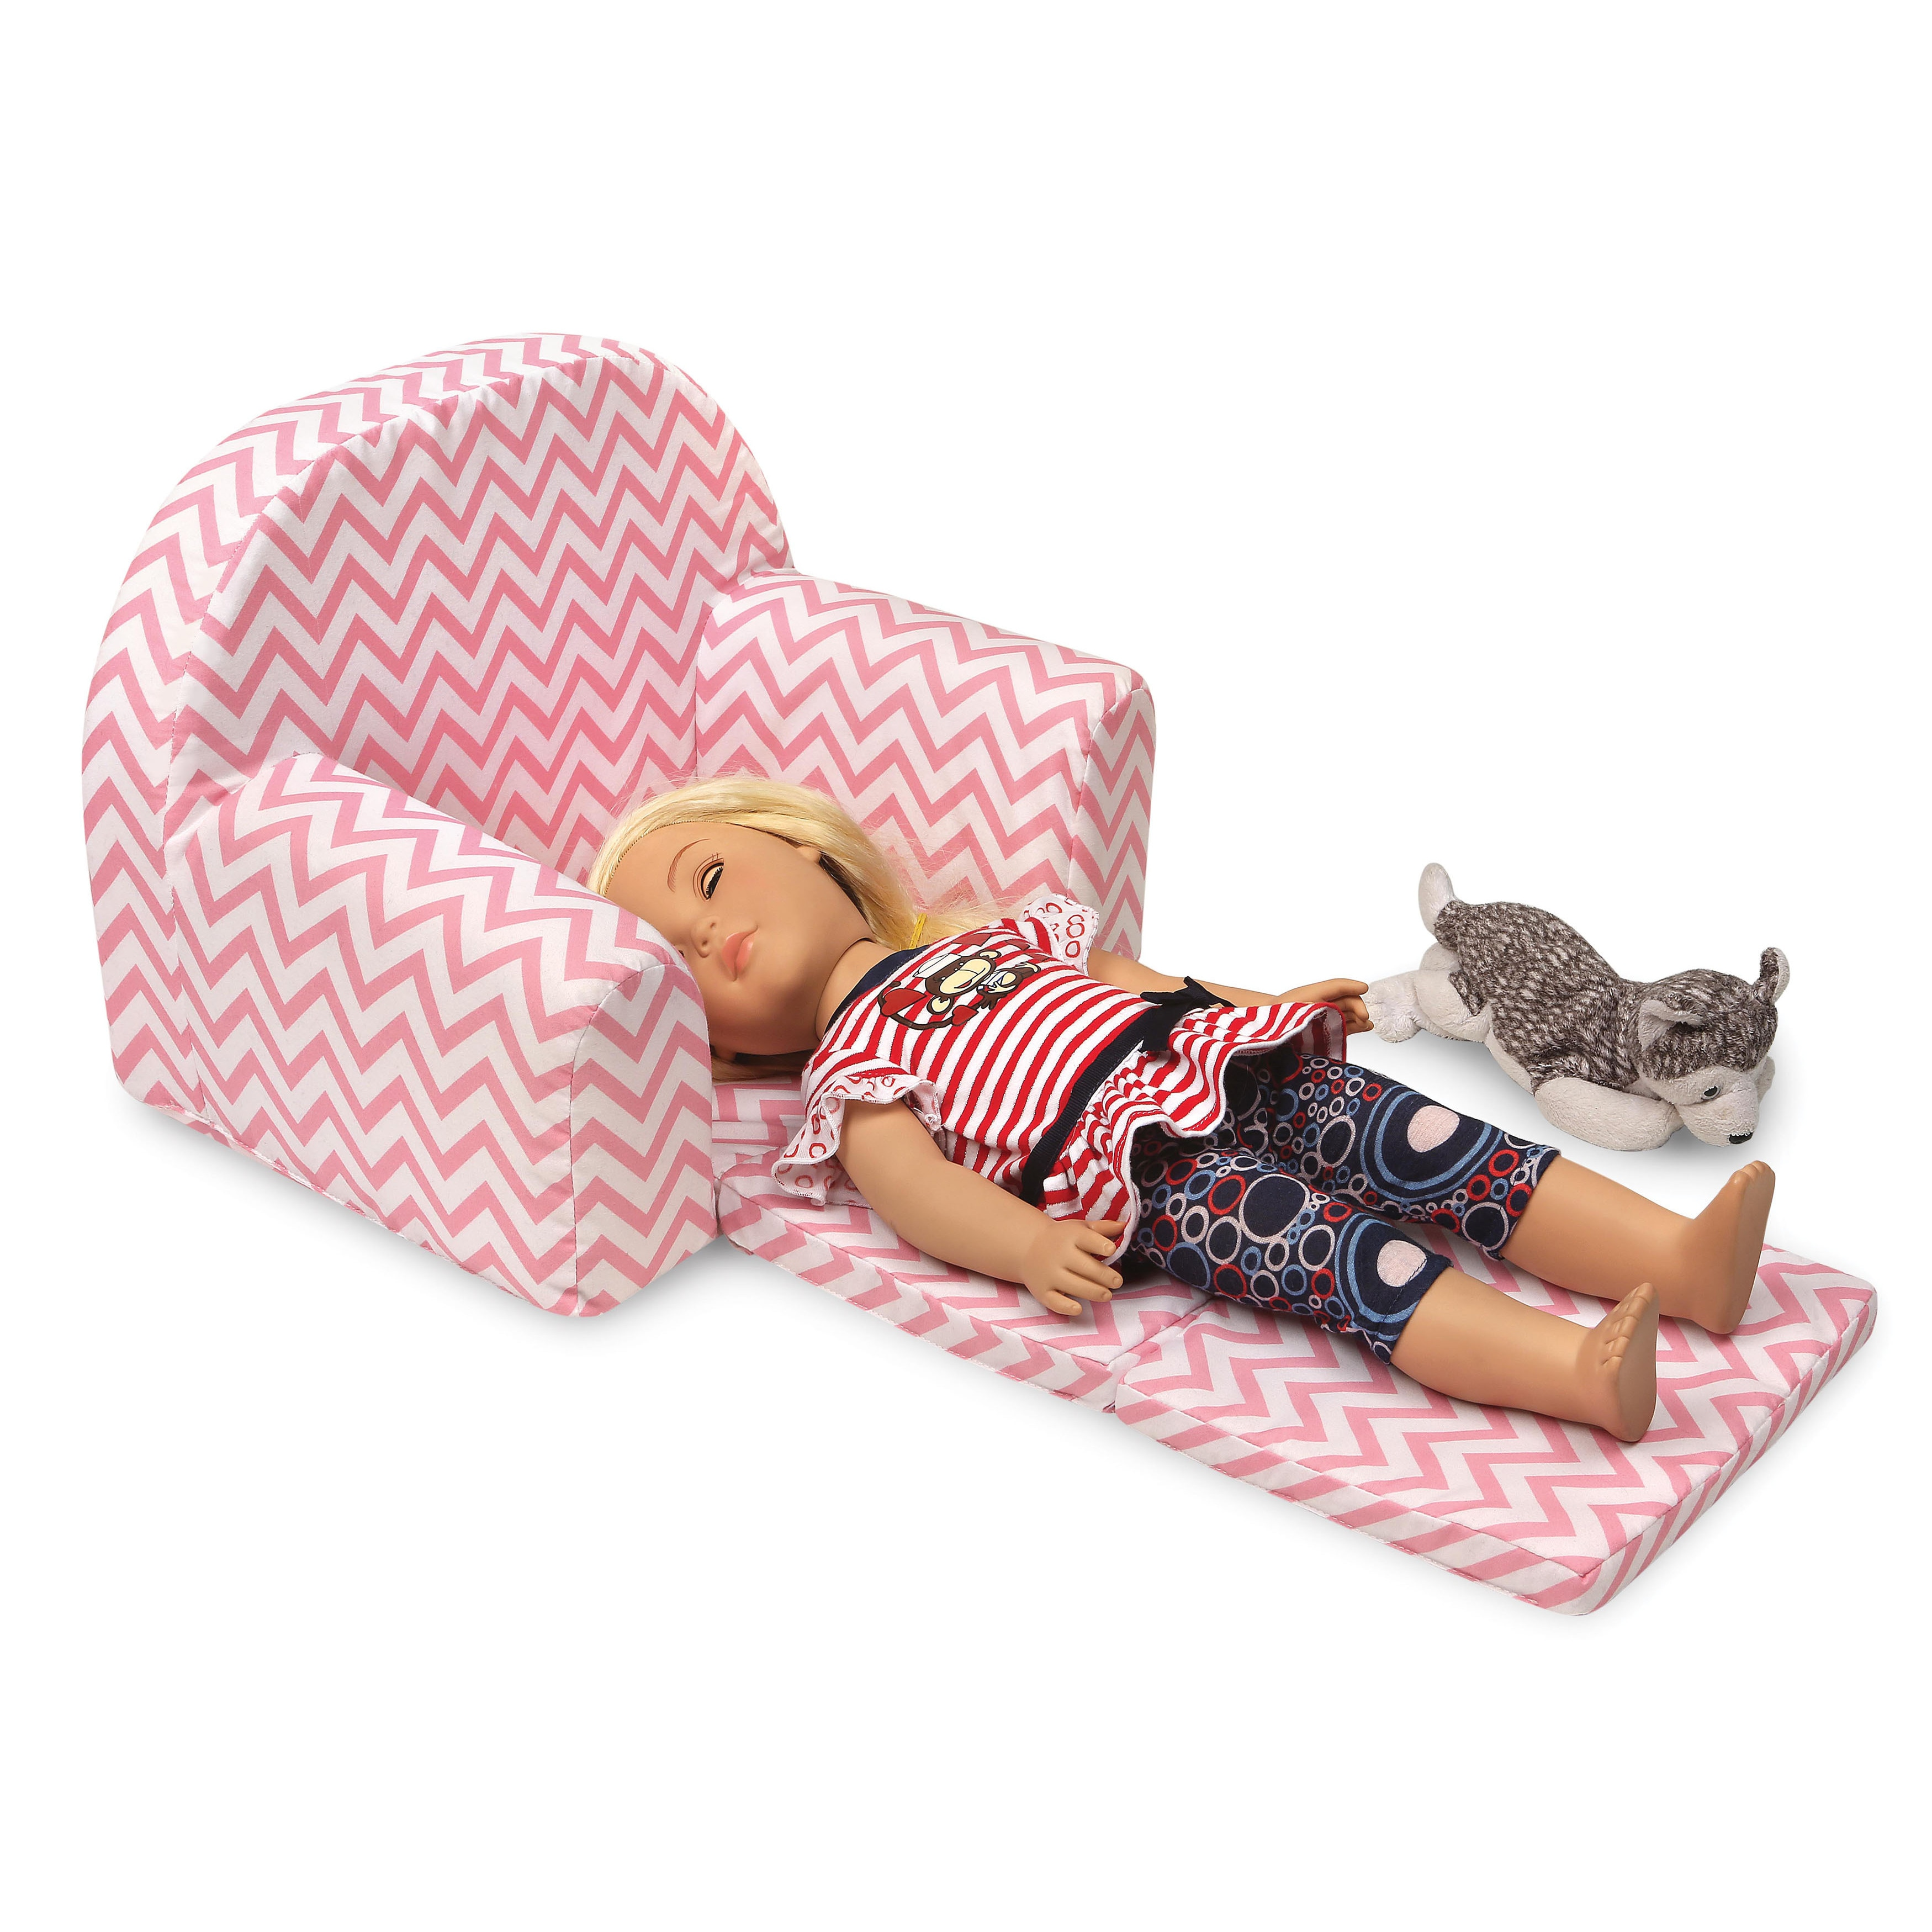 american doll chair office guest badger basket chevron upholstered with foldout bed fits girl dolls